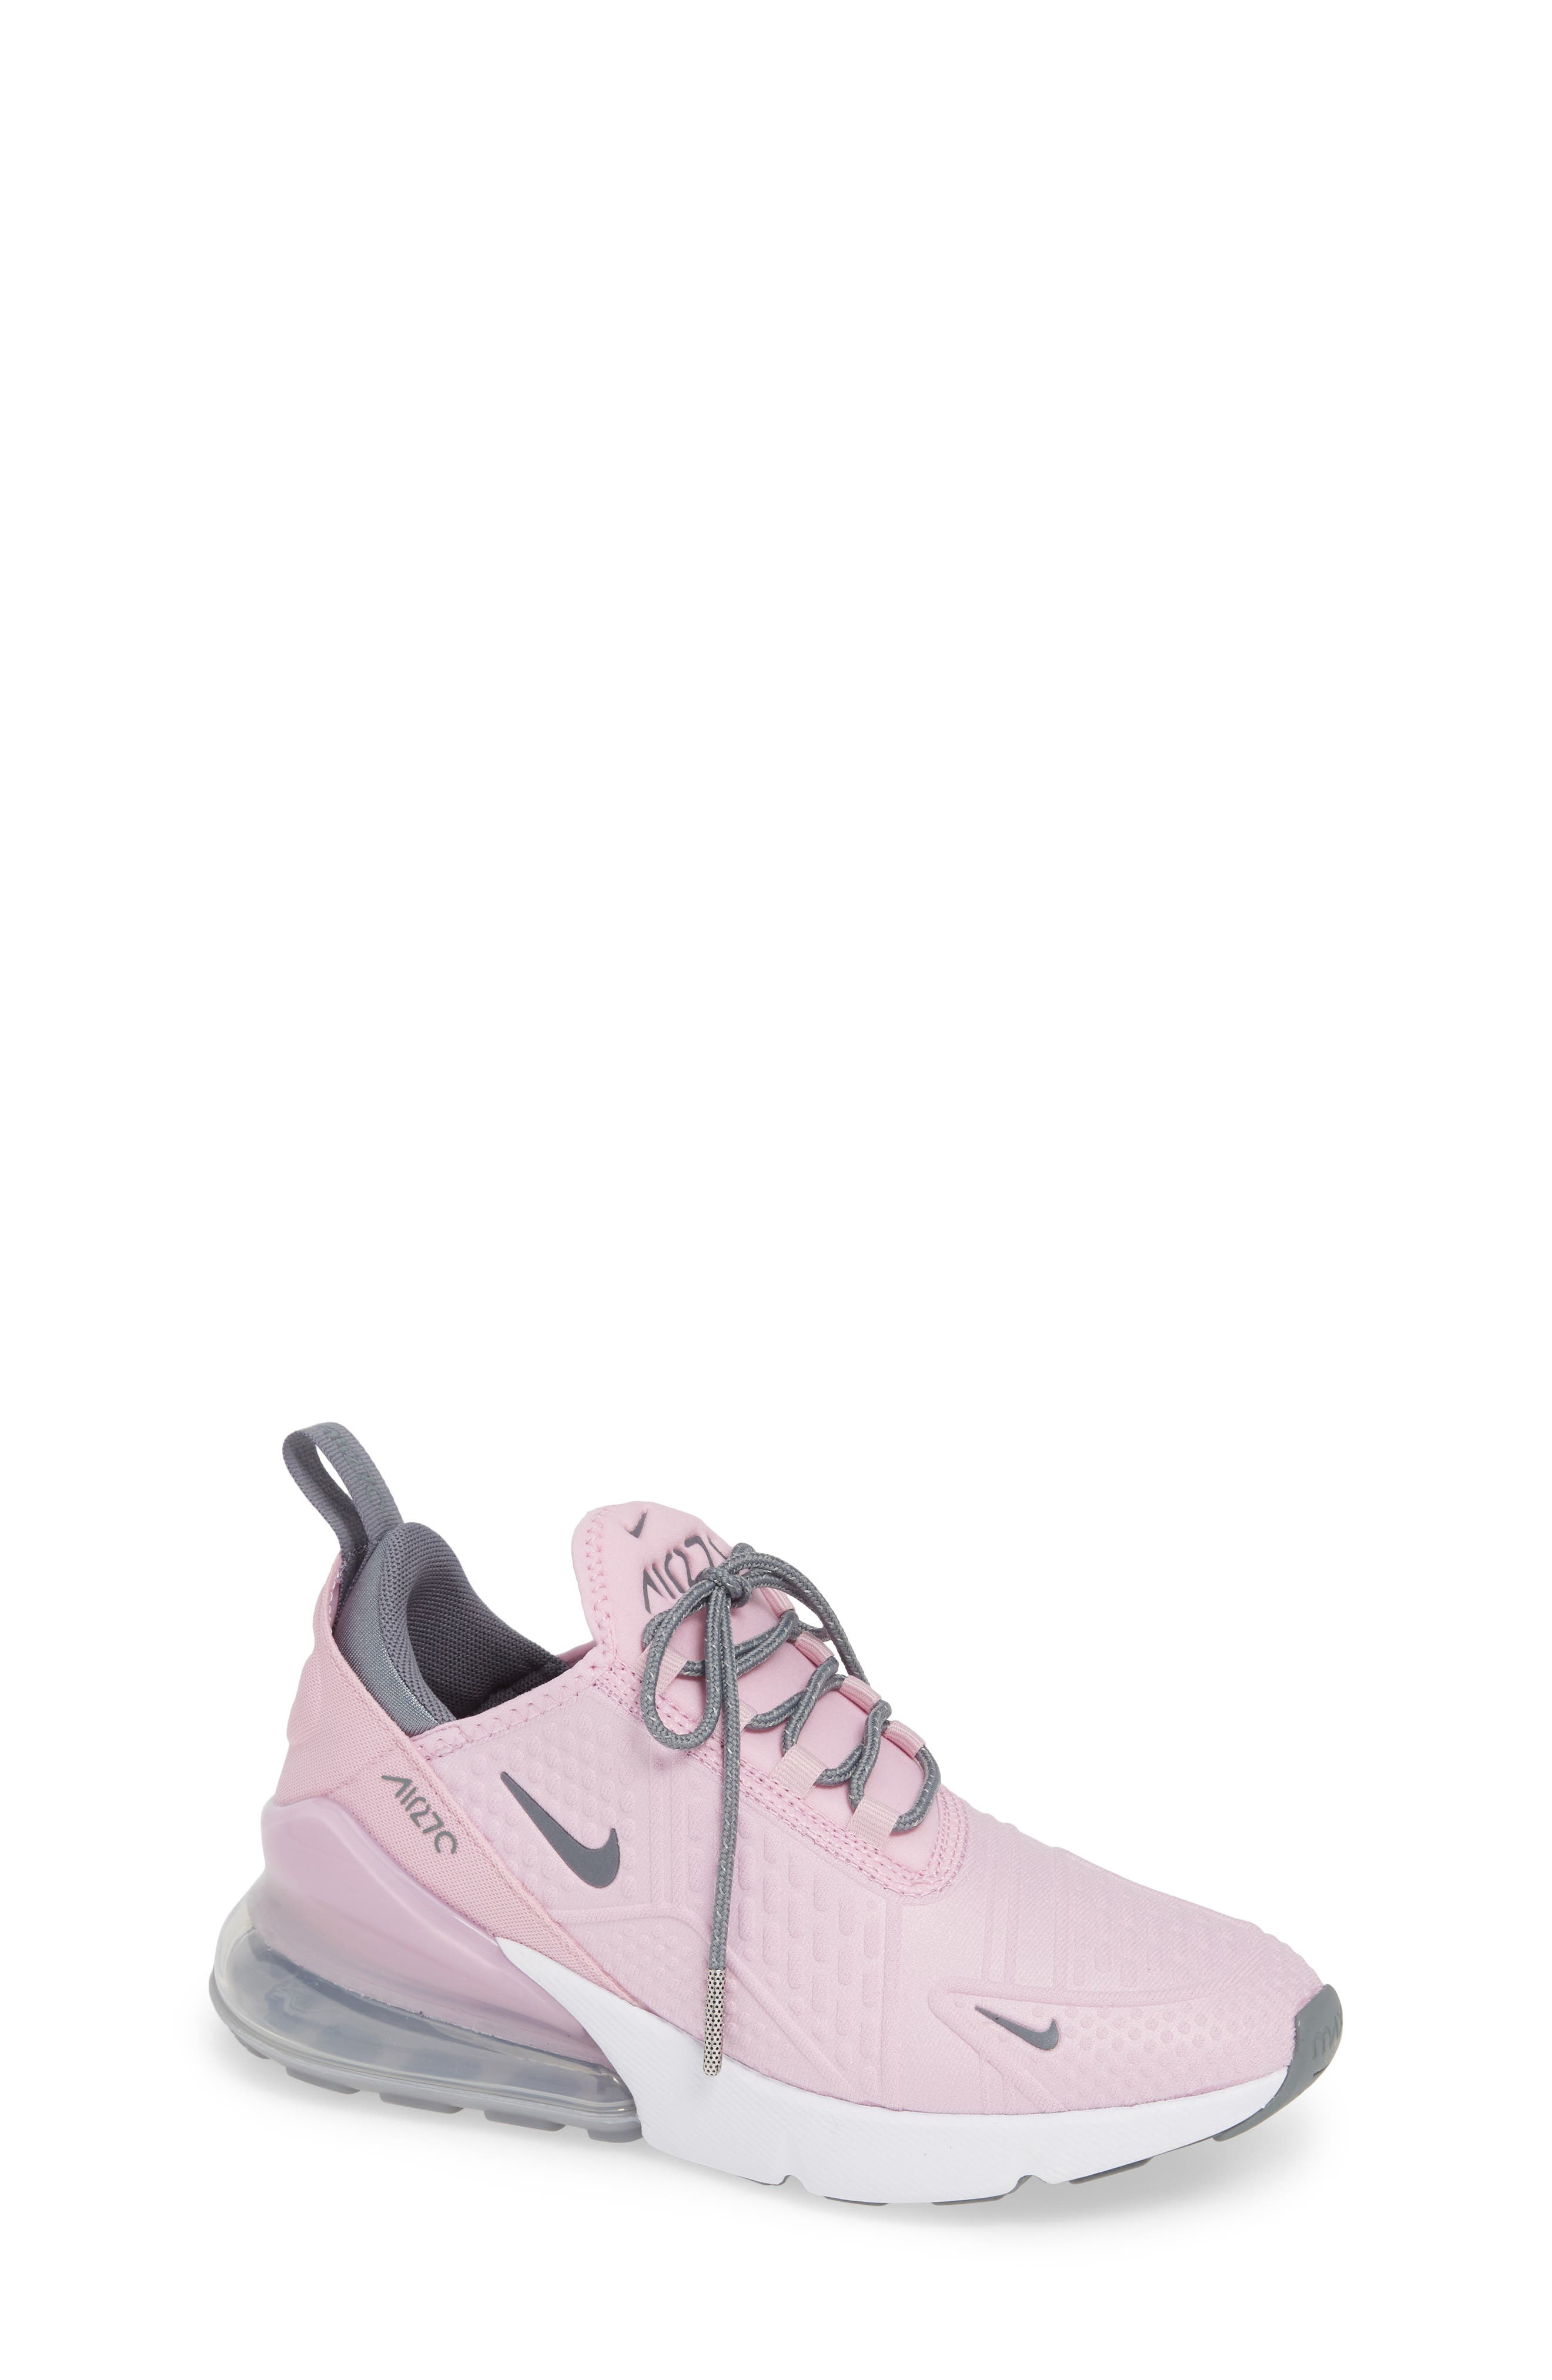 timeless design 92a8a ae801 ... pink white 9cc3a 45928  discount code for nike air max 270 sneaker  toddler little kid big kid 69dab 31a32